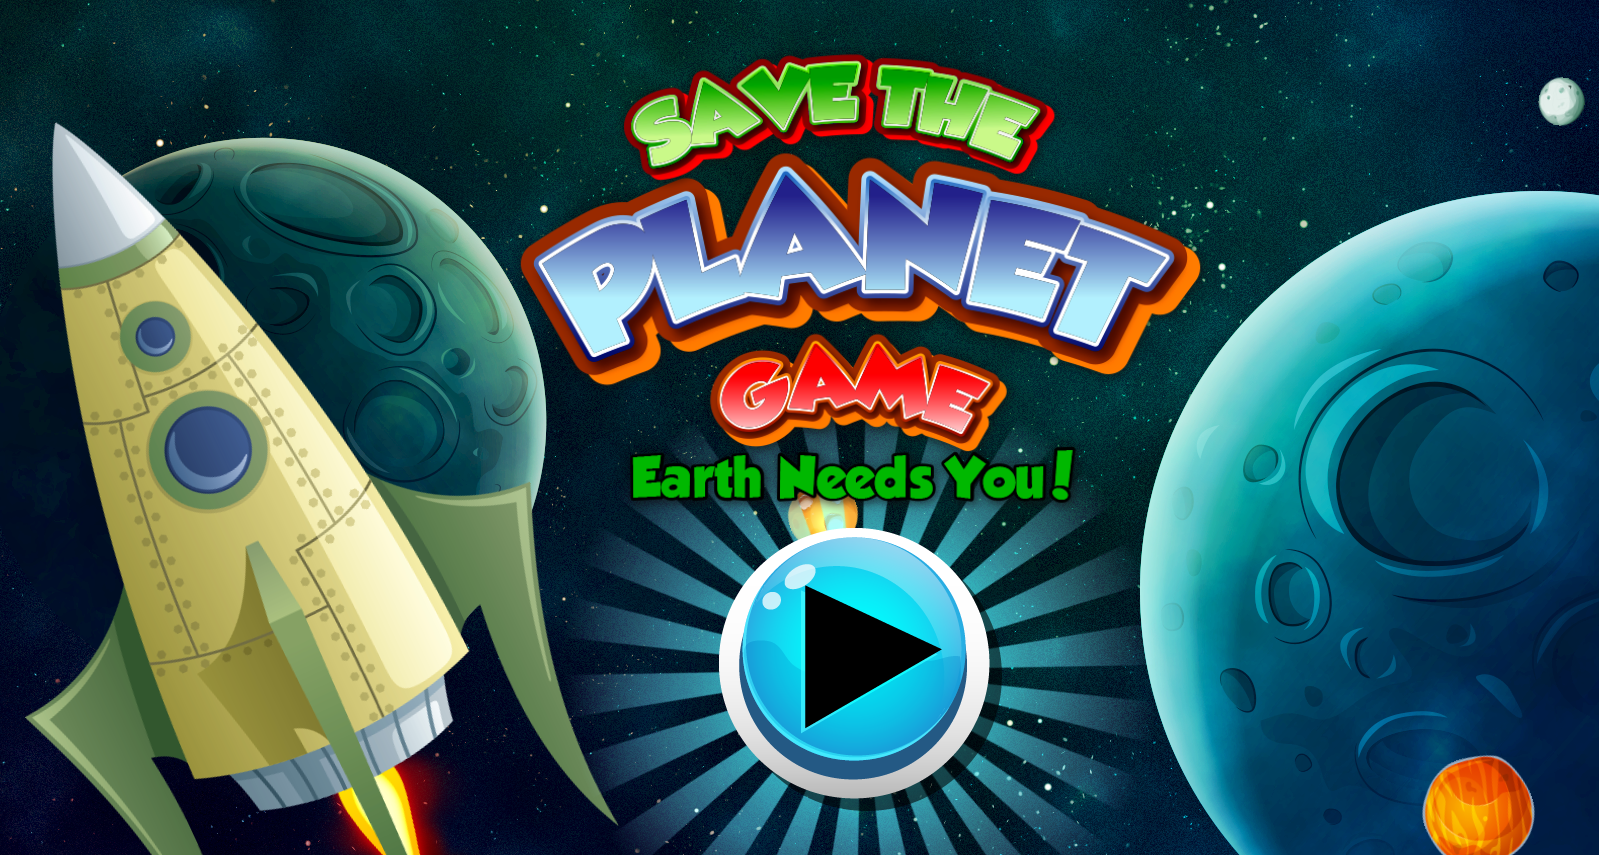 Save the Planet Game!